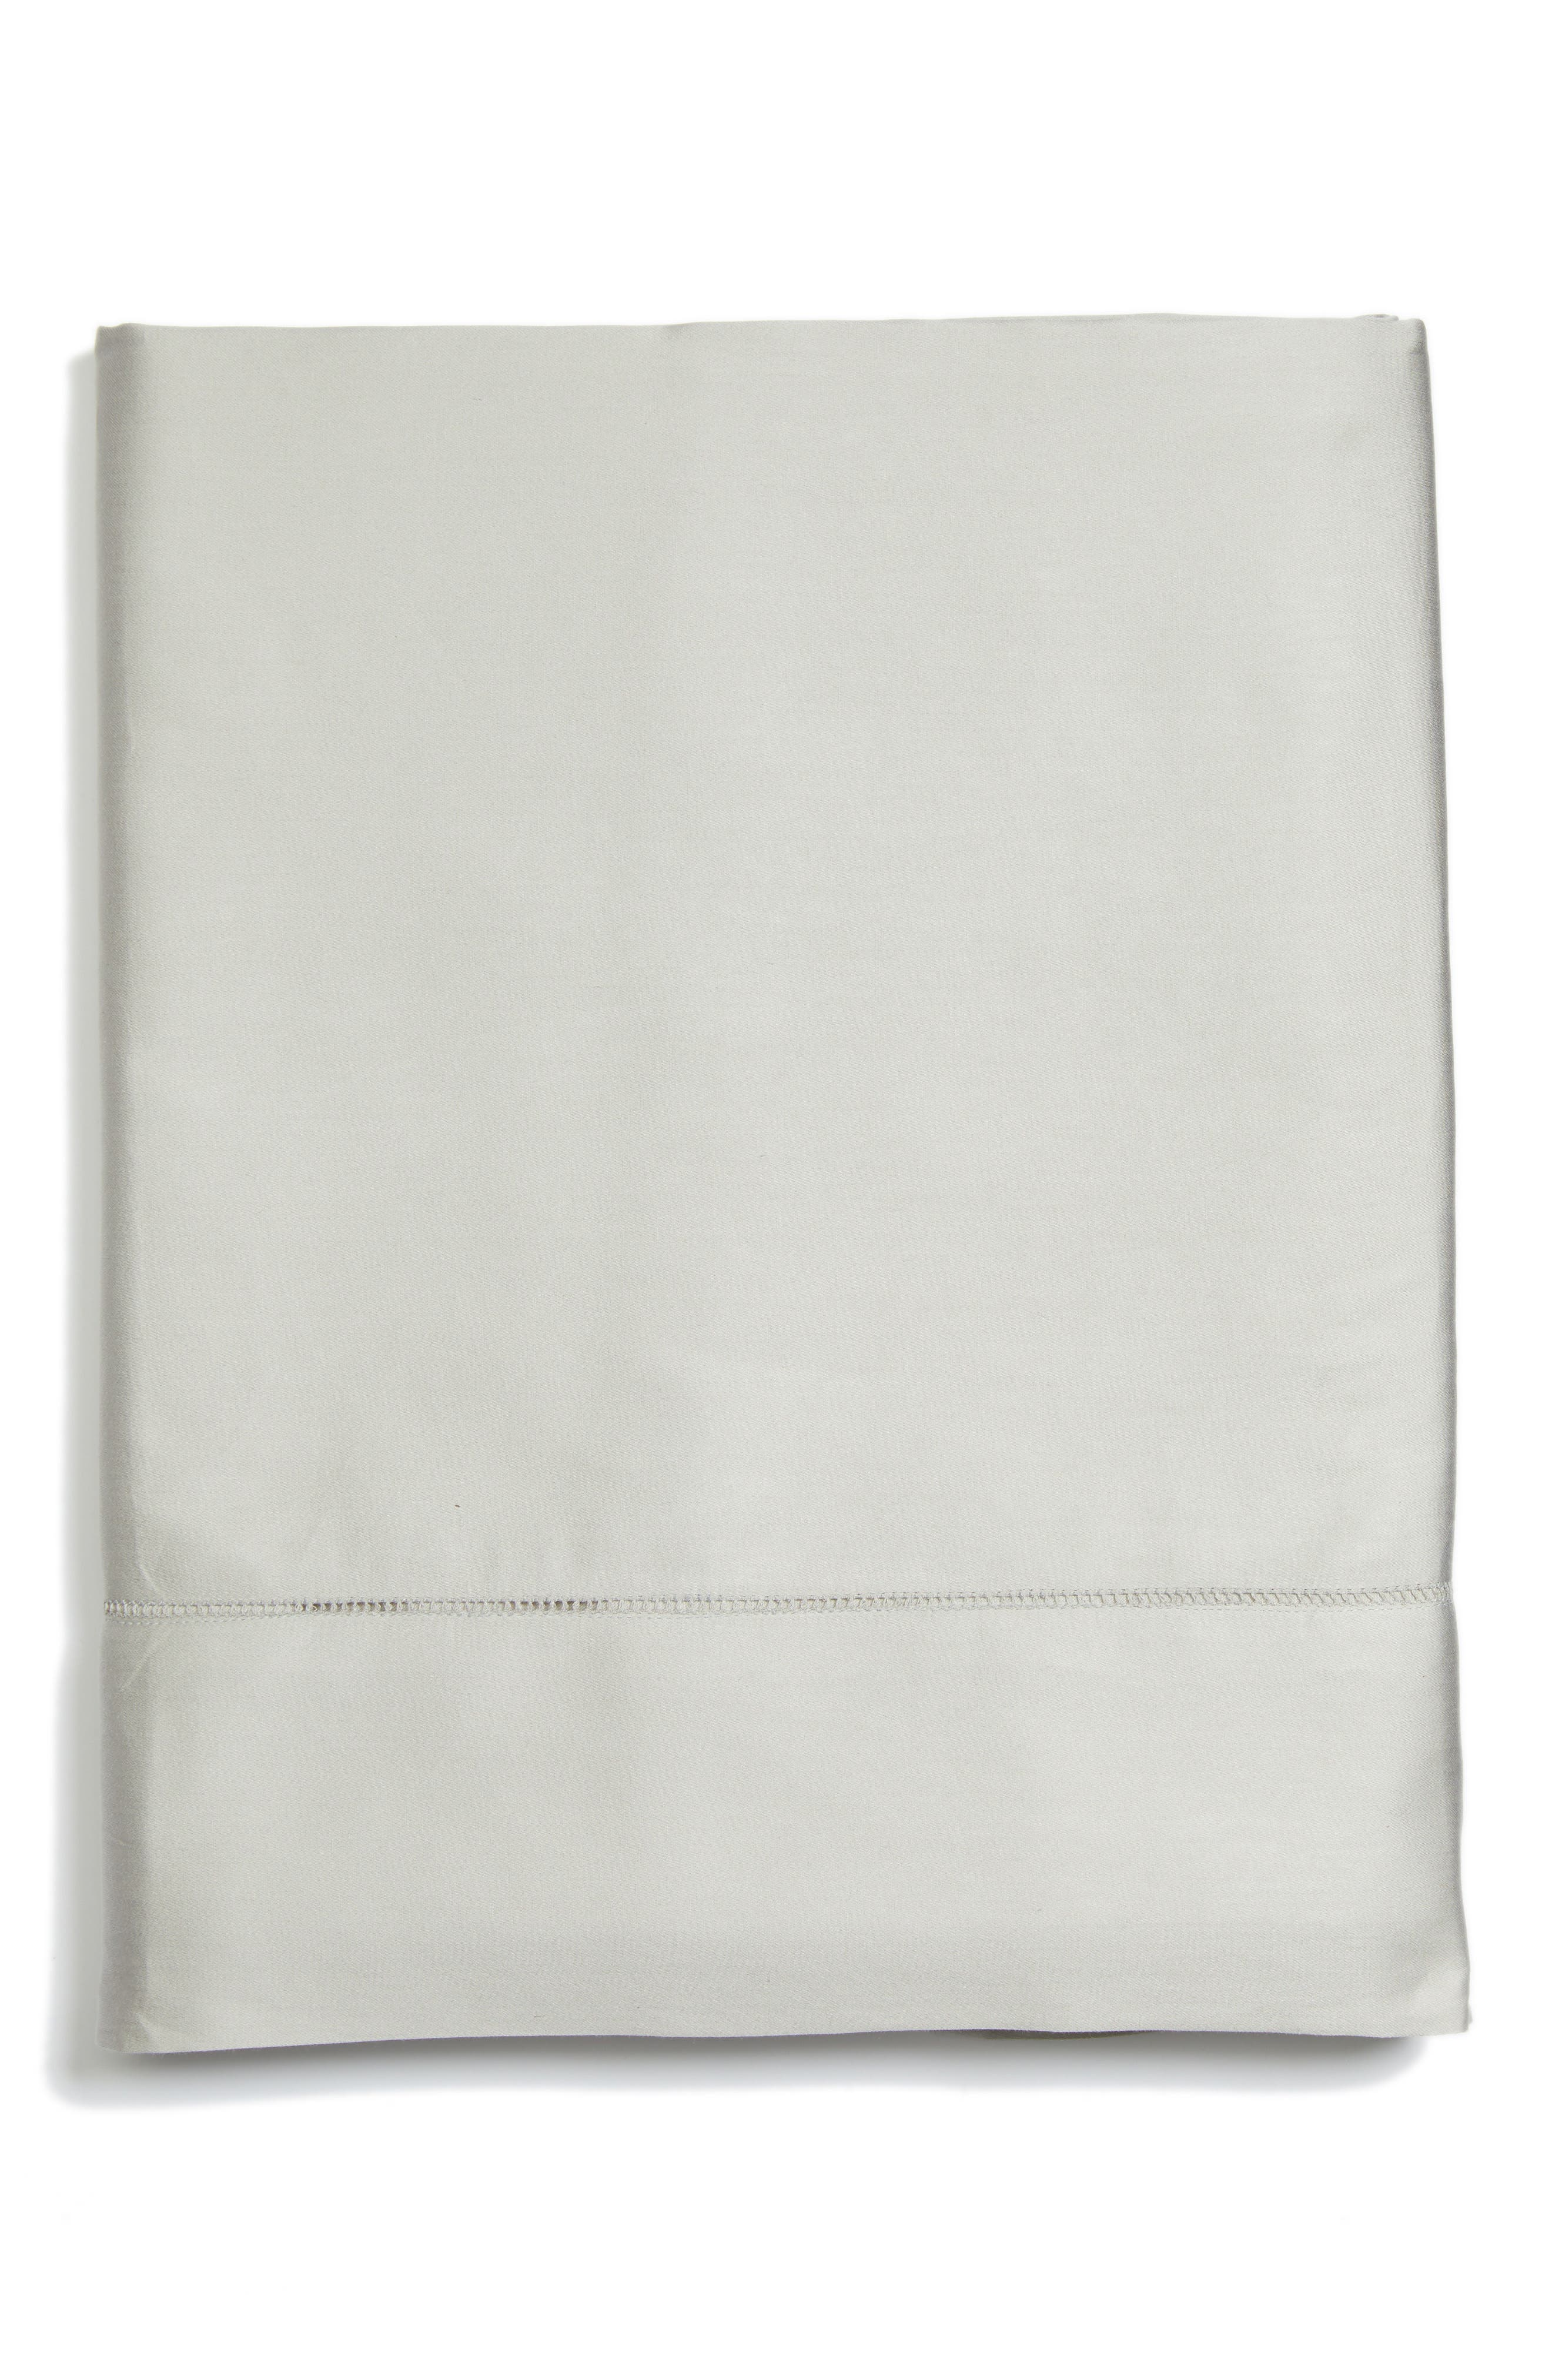 Fiona 300 Thread Count Flat Sheet,                             Main thumbnail 1, color,                             020